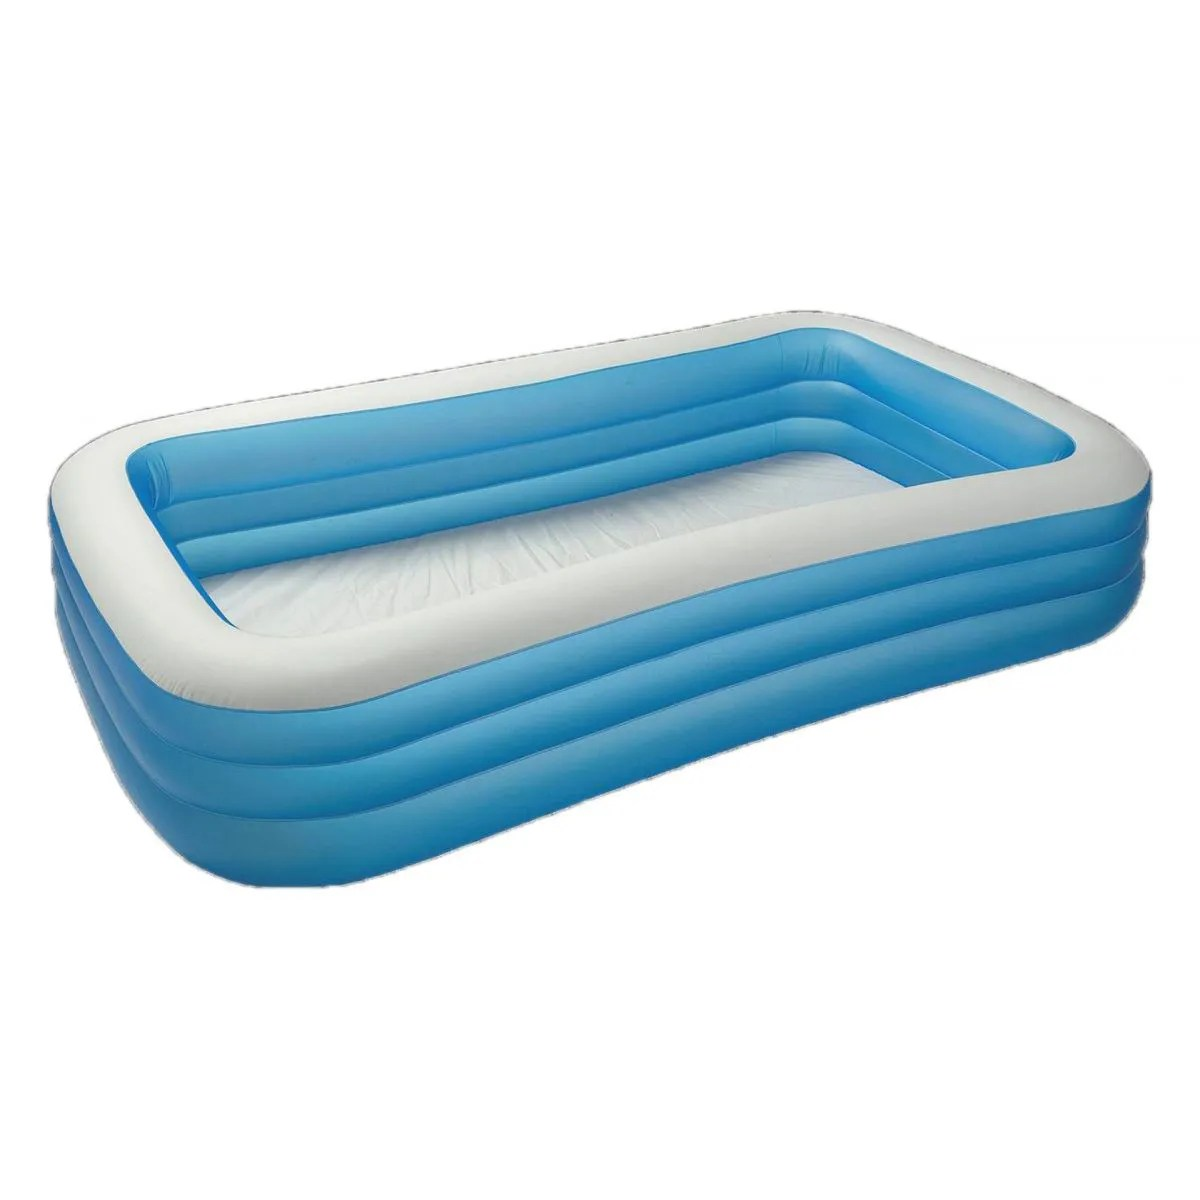 Piscina De Plastico 12000 Litros Intex Piscina Inflável 1000 Litros Retangular Intex Virtual